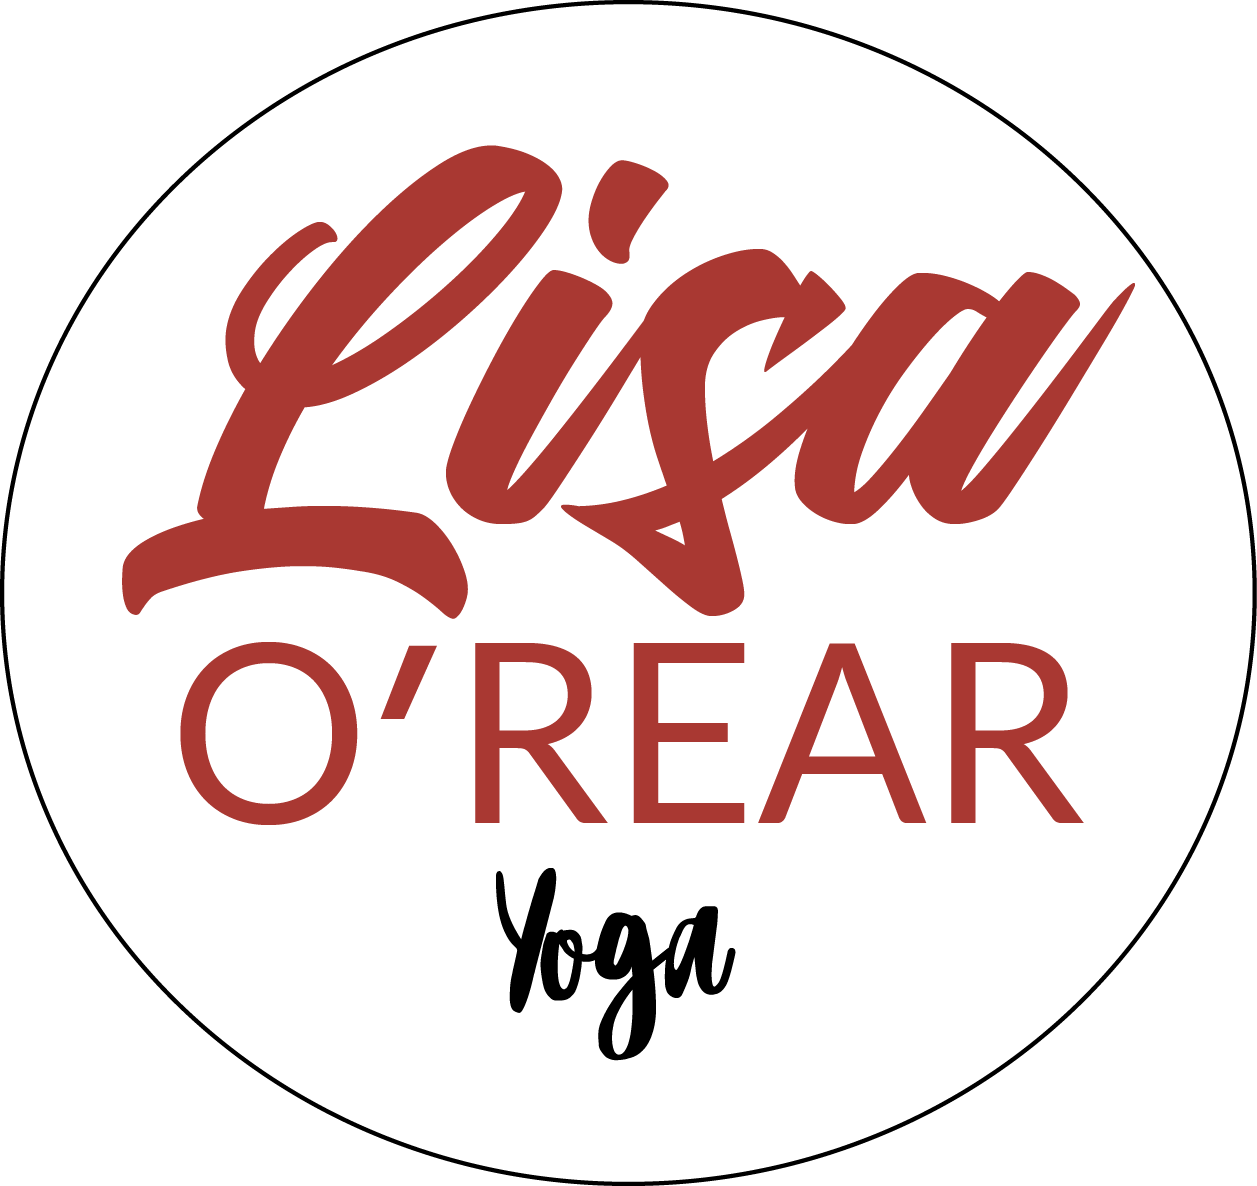 Lisa O'Rear Yoga